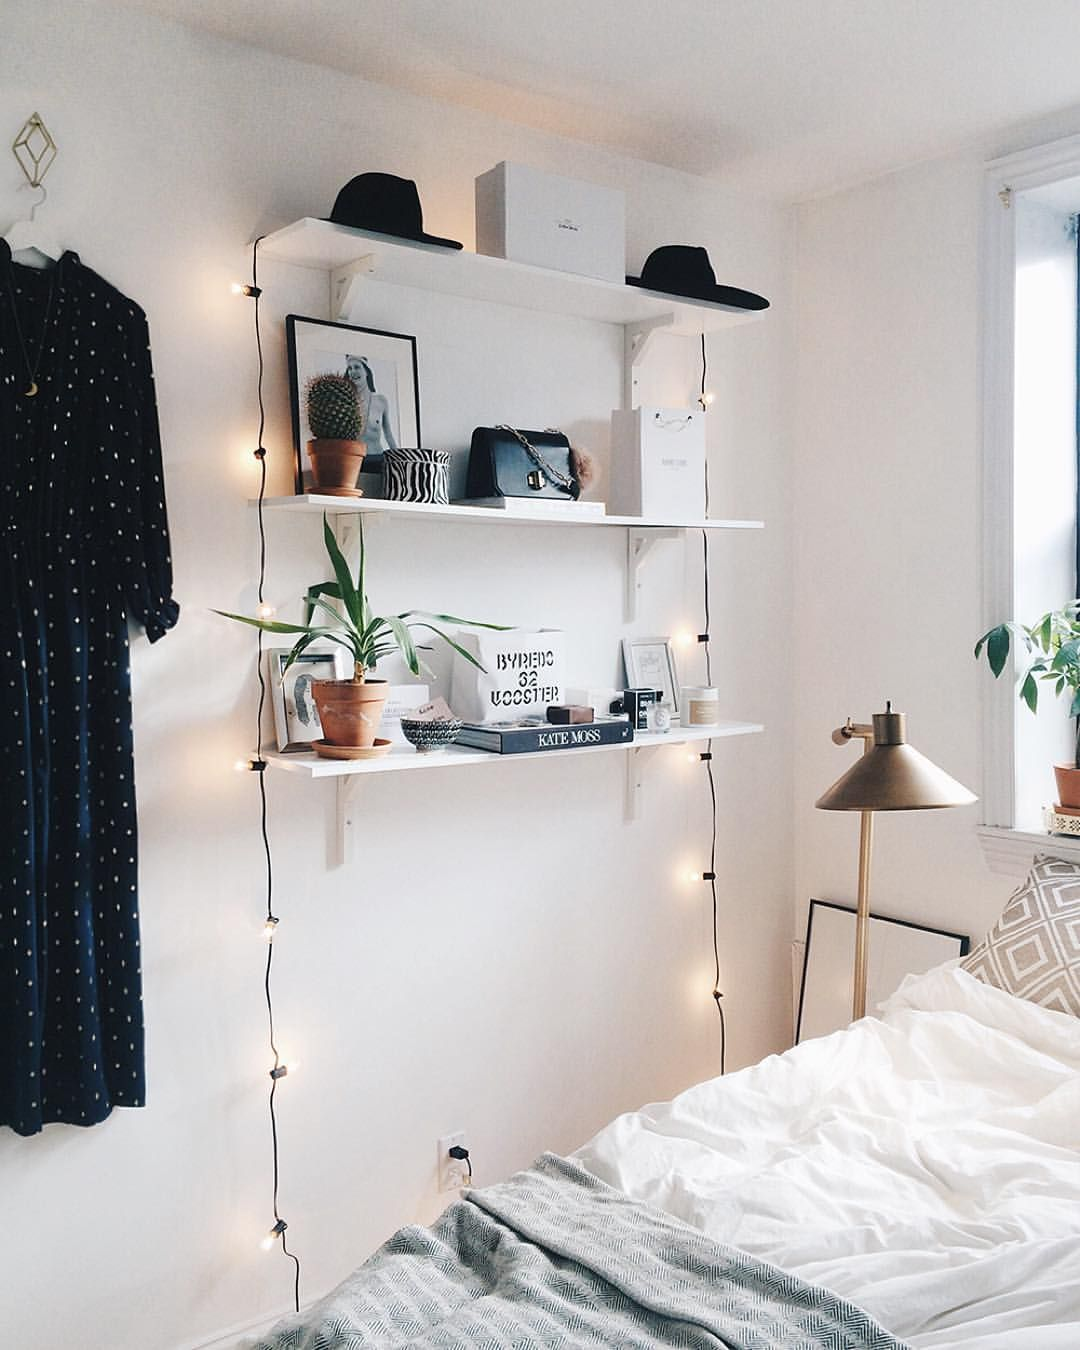 Bedroom Decorating Ideas Tumblr Bedroom Aesthetic Bedroom Ceiling Decorating Ideas Interior Design Bedroom Images Contemporary: Bedrooms For Teenagers With Its Dreamy Aesthetic And Fairy